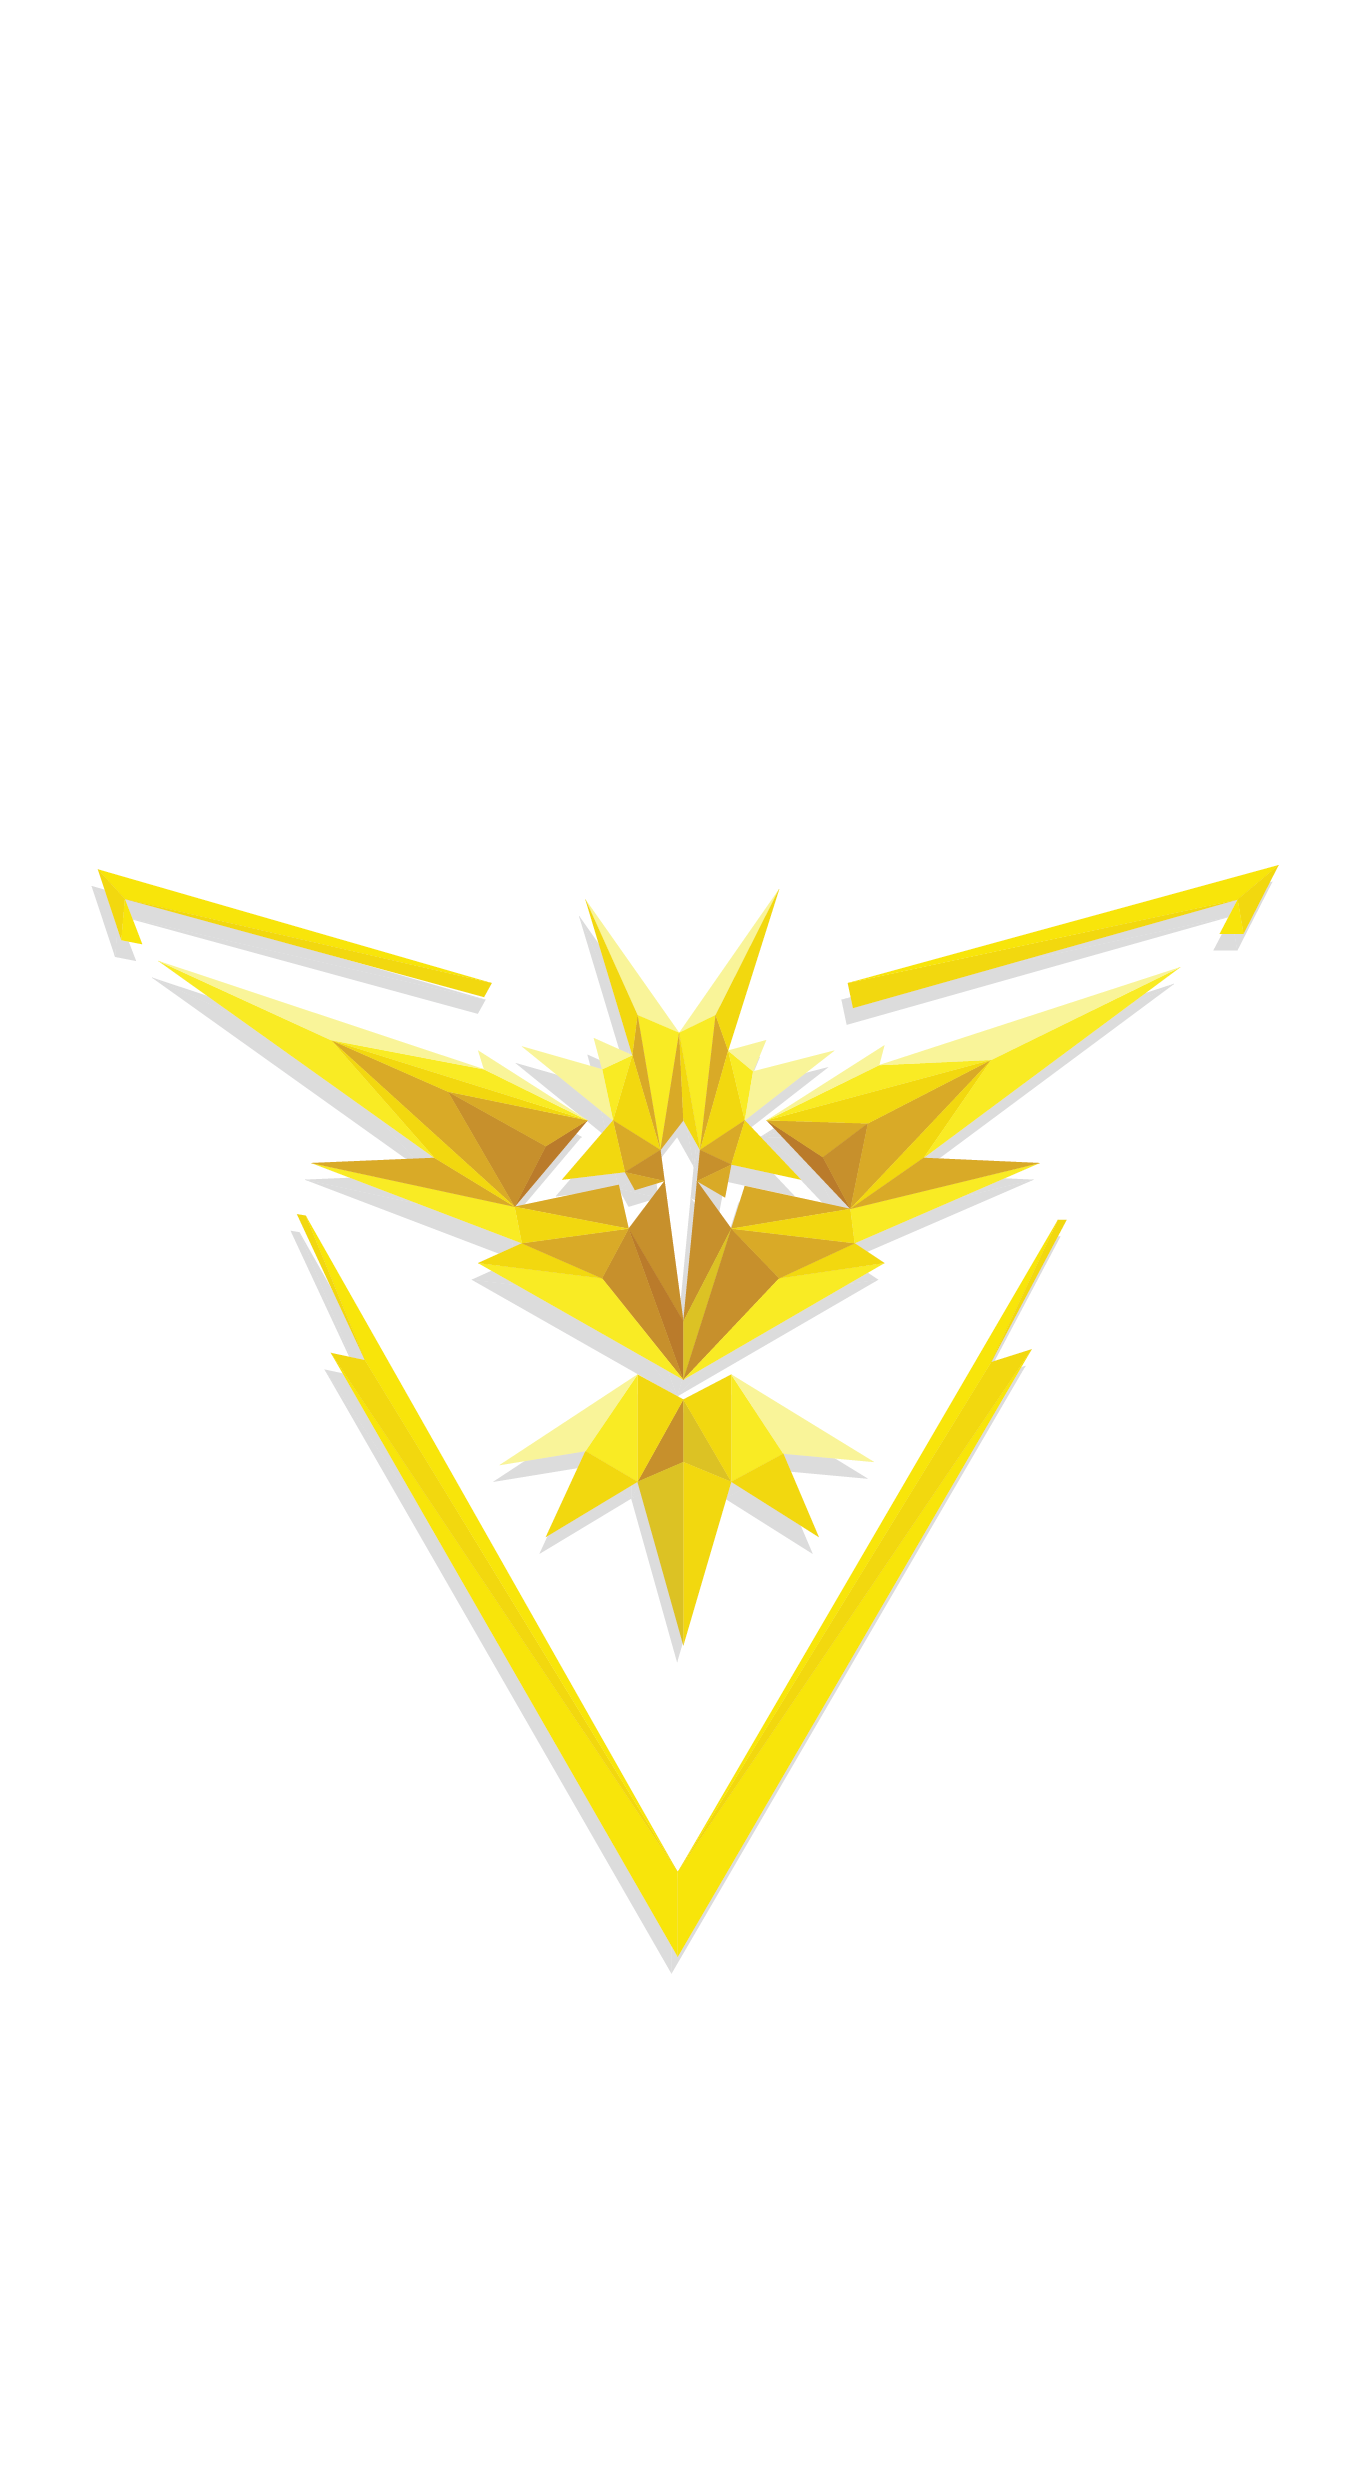 Team Instinct Png, png collections at sccpre.cat.